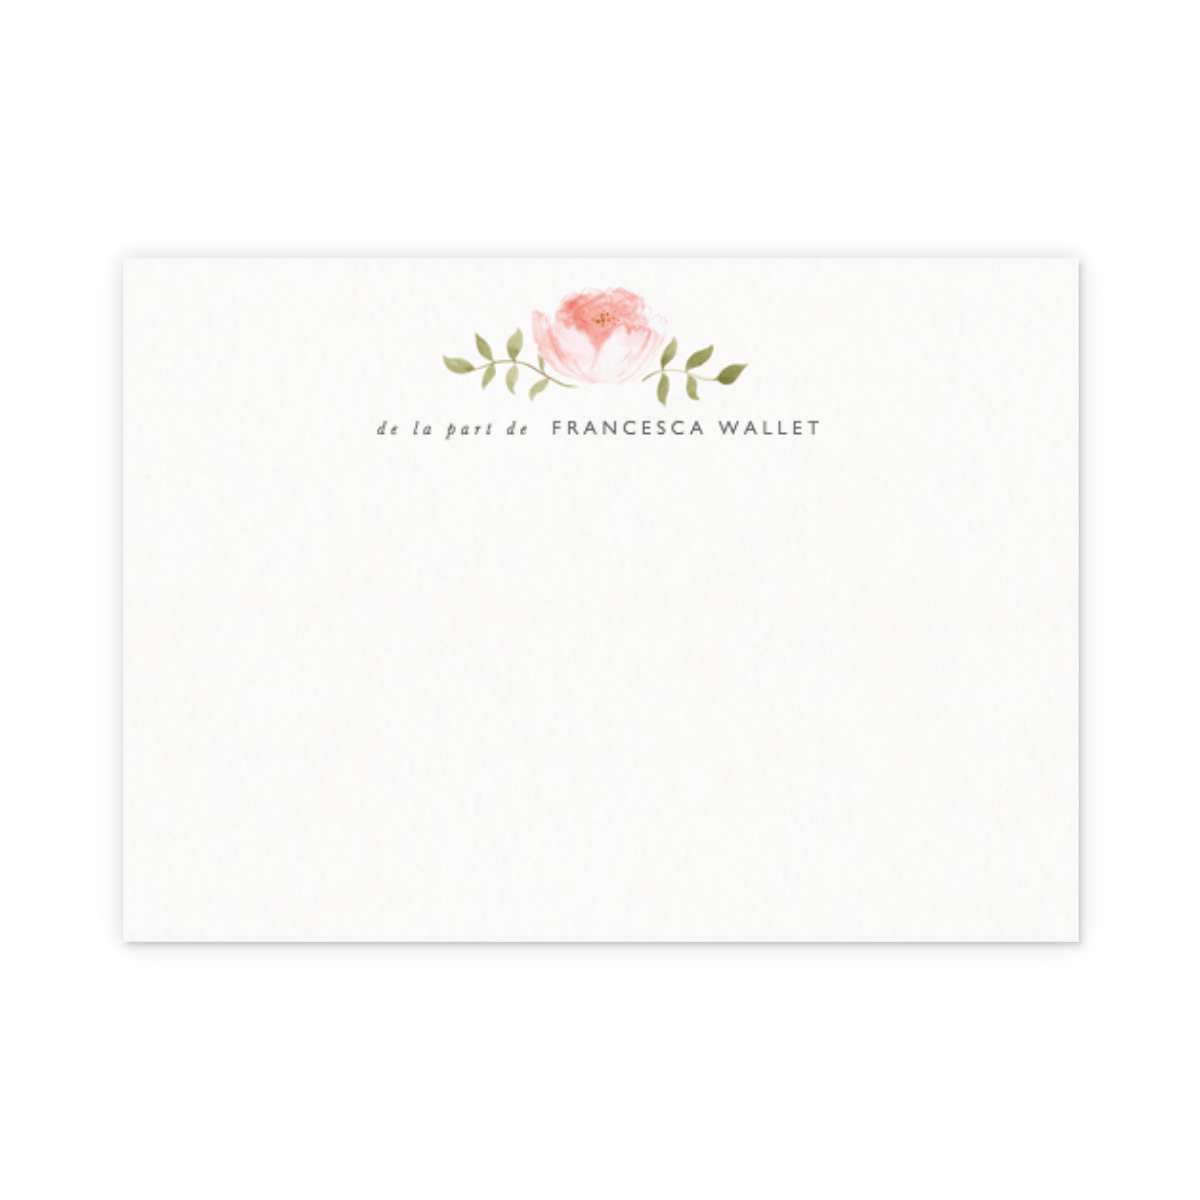 Https%3a%2f%2fwww.papier.com%2fproduct image%2f44867%2f10%2fblooming peonies 5245 avant 1534870594.png?ixlib=rb 1.1